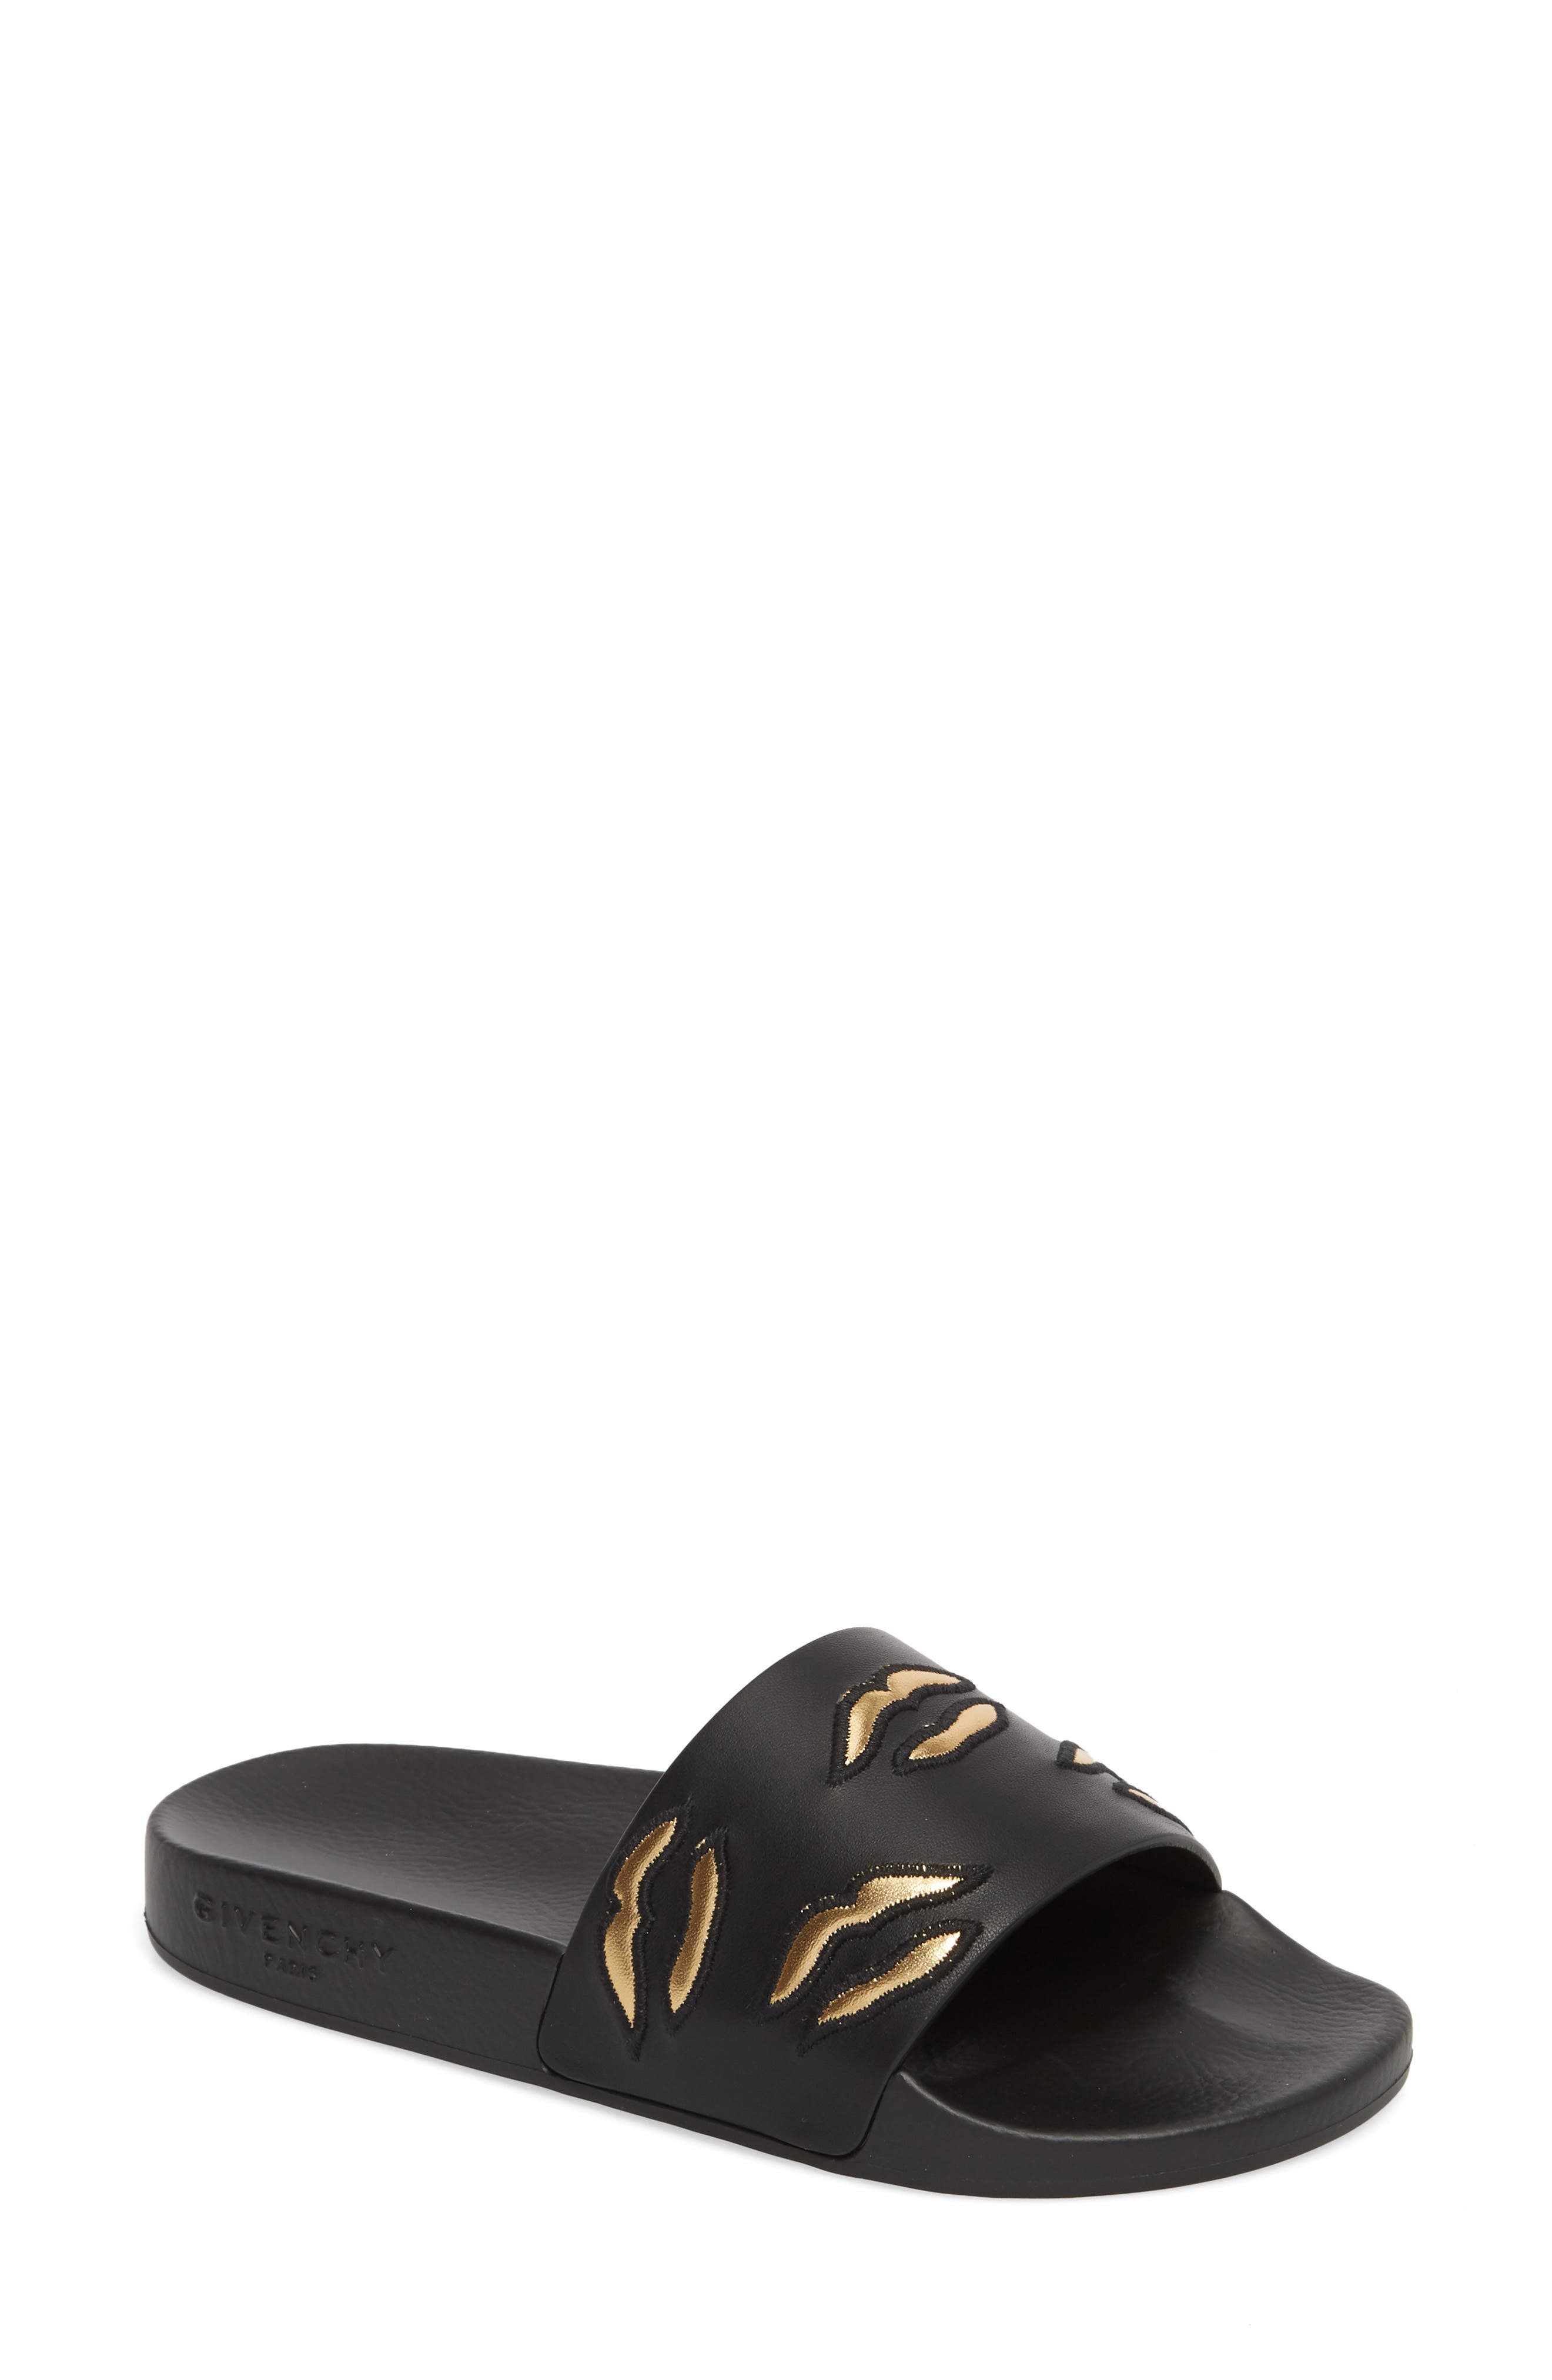 Kiss Slide Sandal,                             Main thumbnail 1, color,                             BLACK/ GOLD